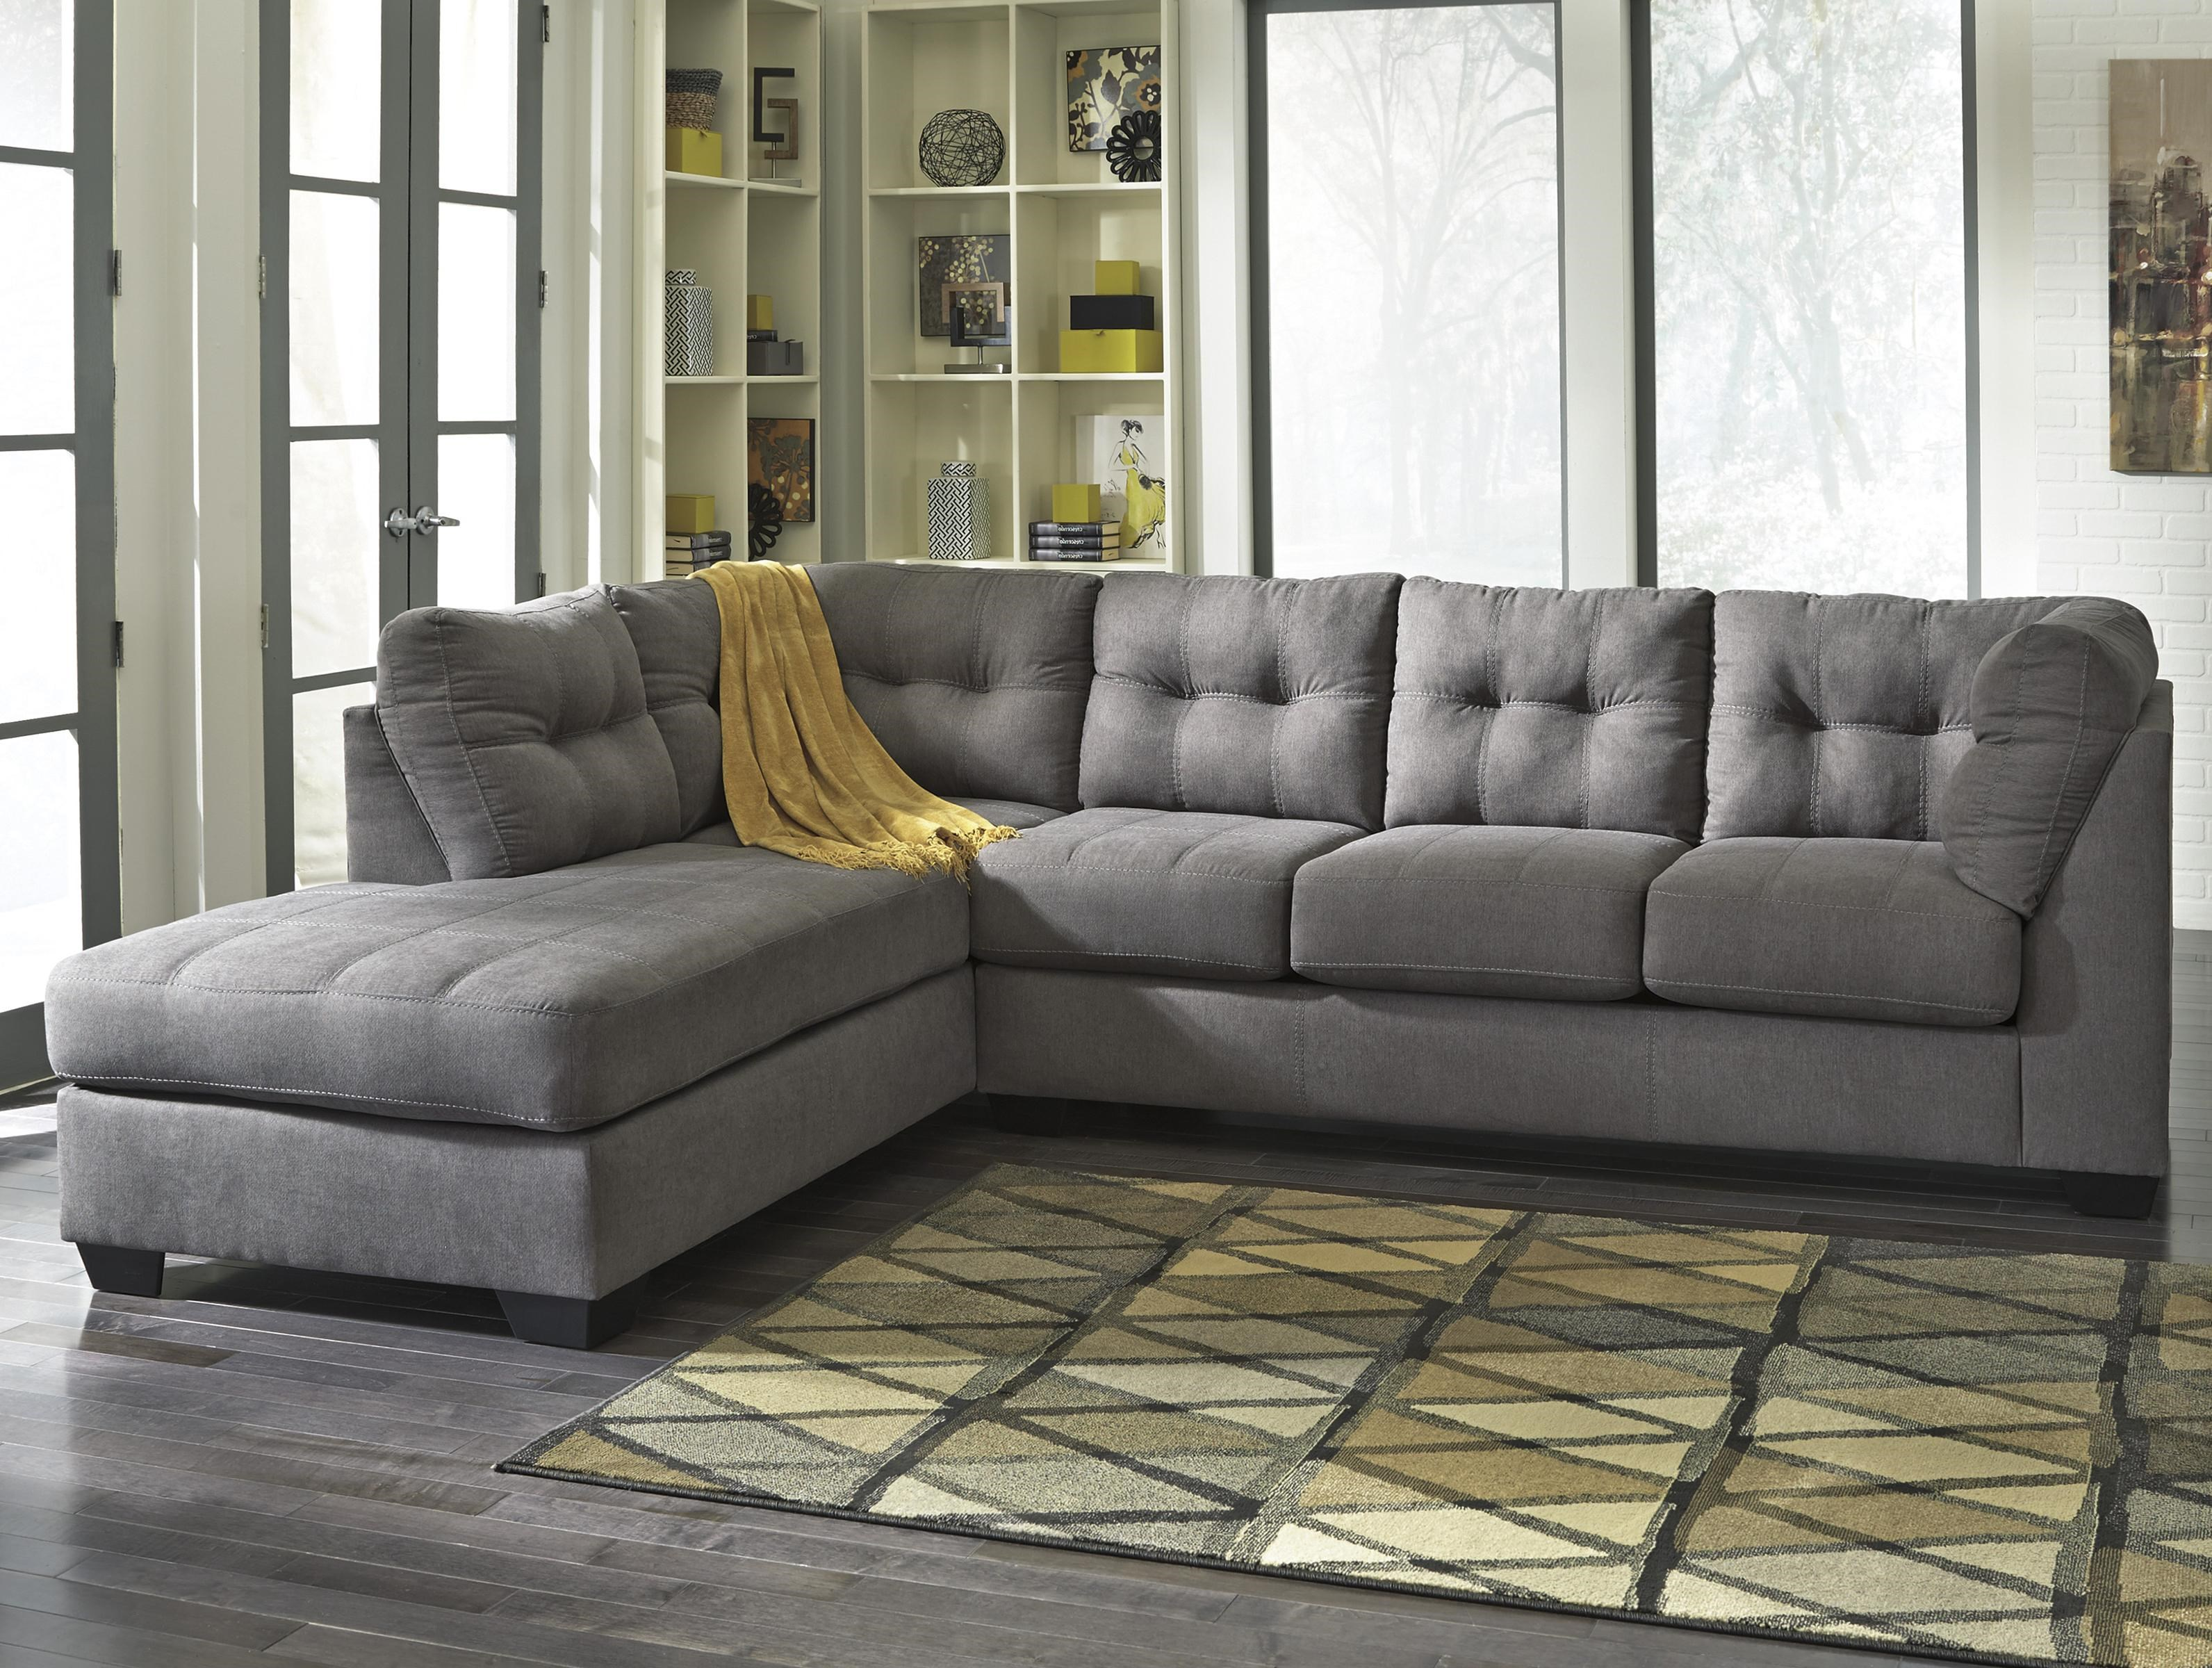 Genial Benchcraft By Ashley Maier   Charcoal2 Piece Sectional With Left Chaise ...